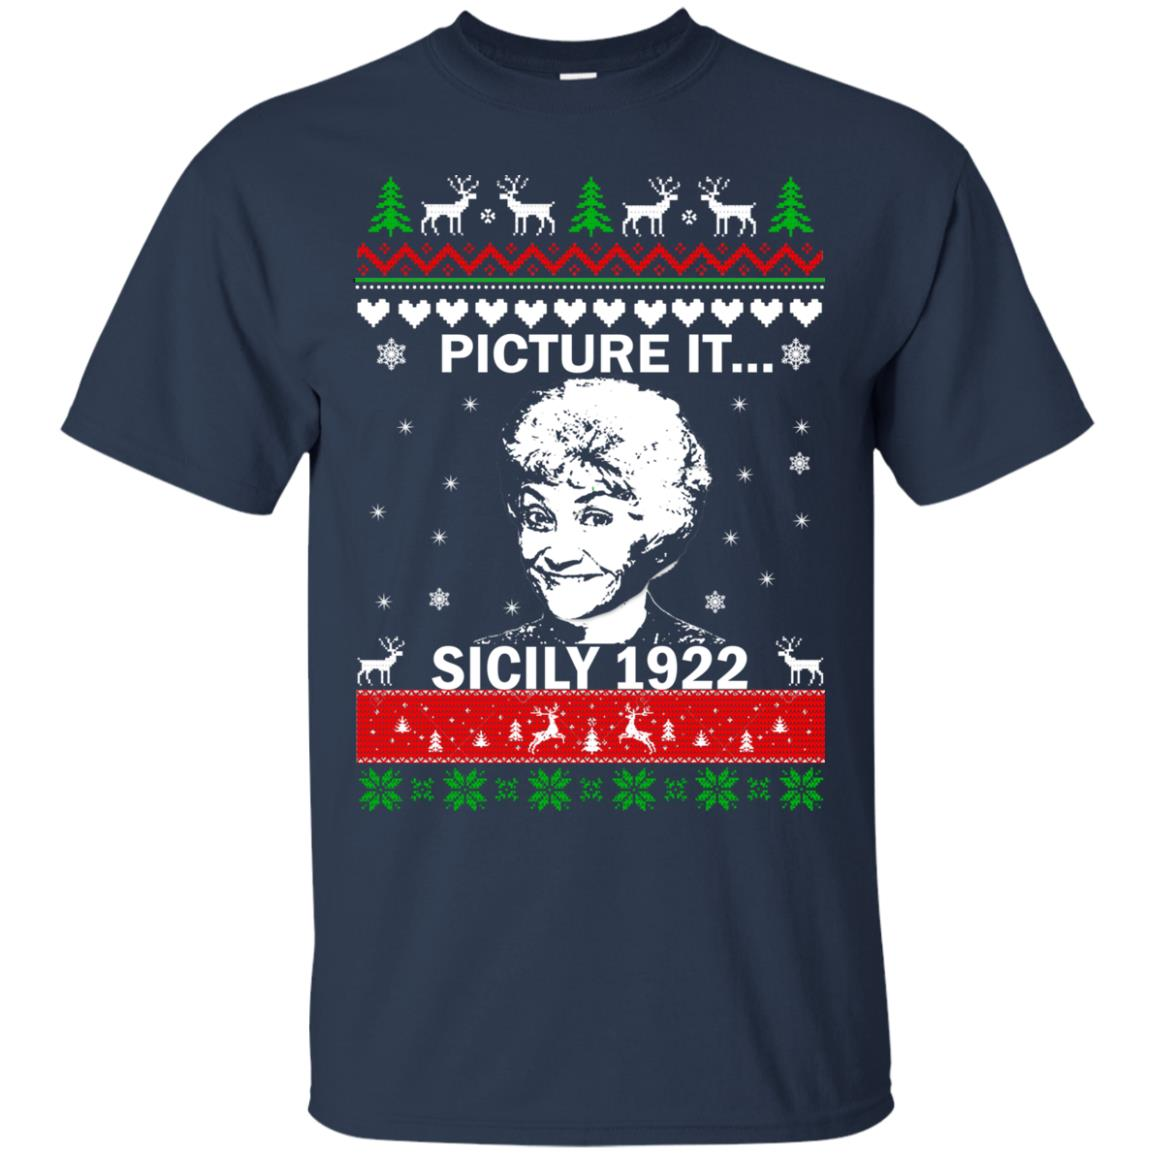 image 712 - Sophia: Picture it! Sicily 1922 Christmas Sweater, Long Sleeve